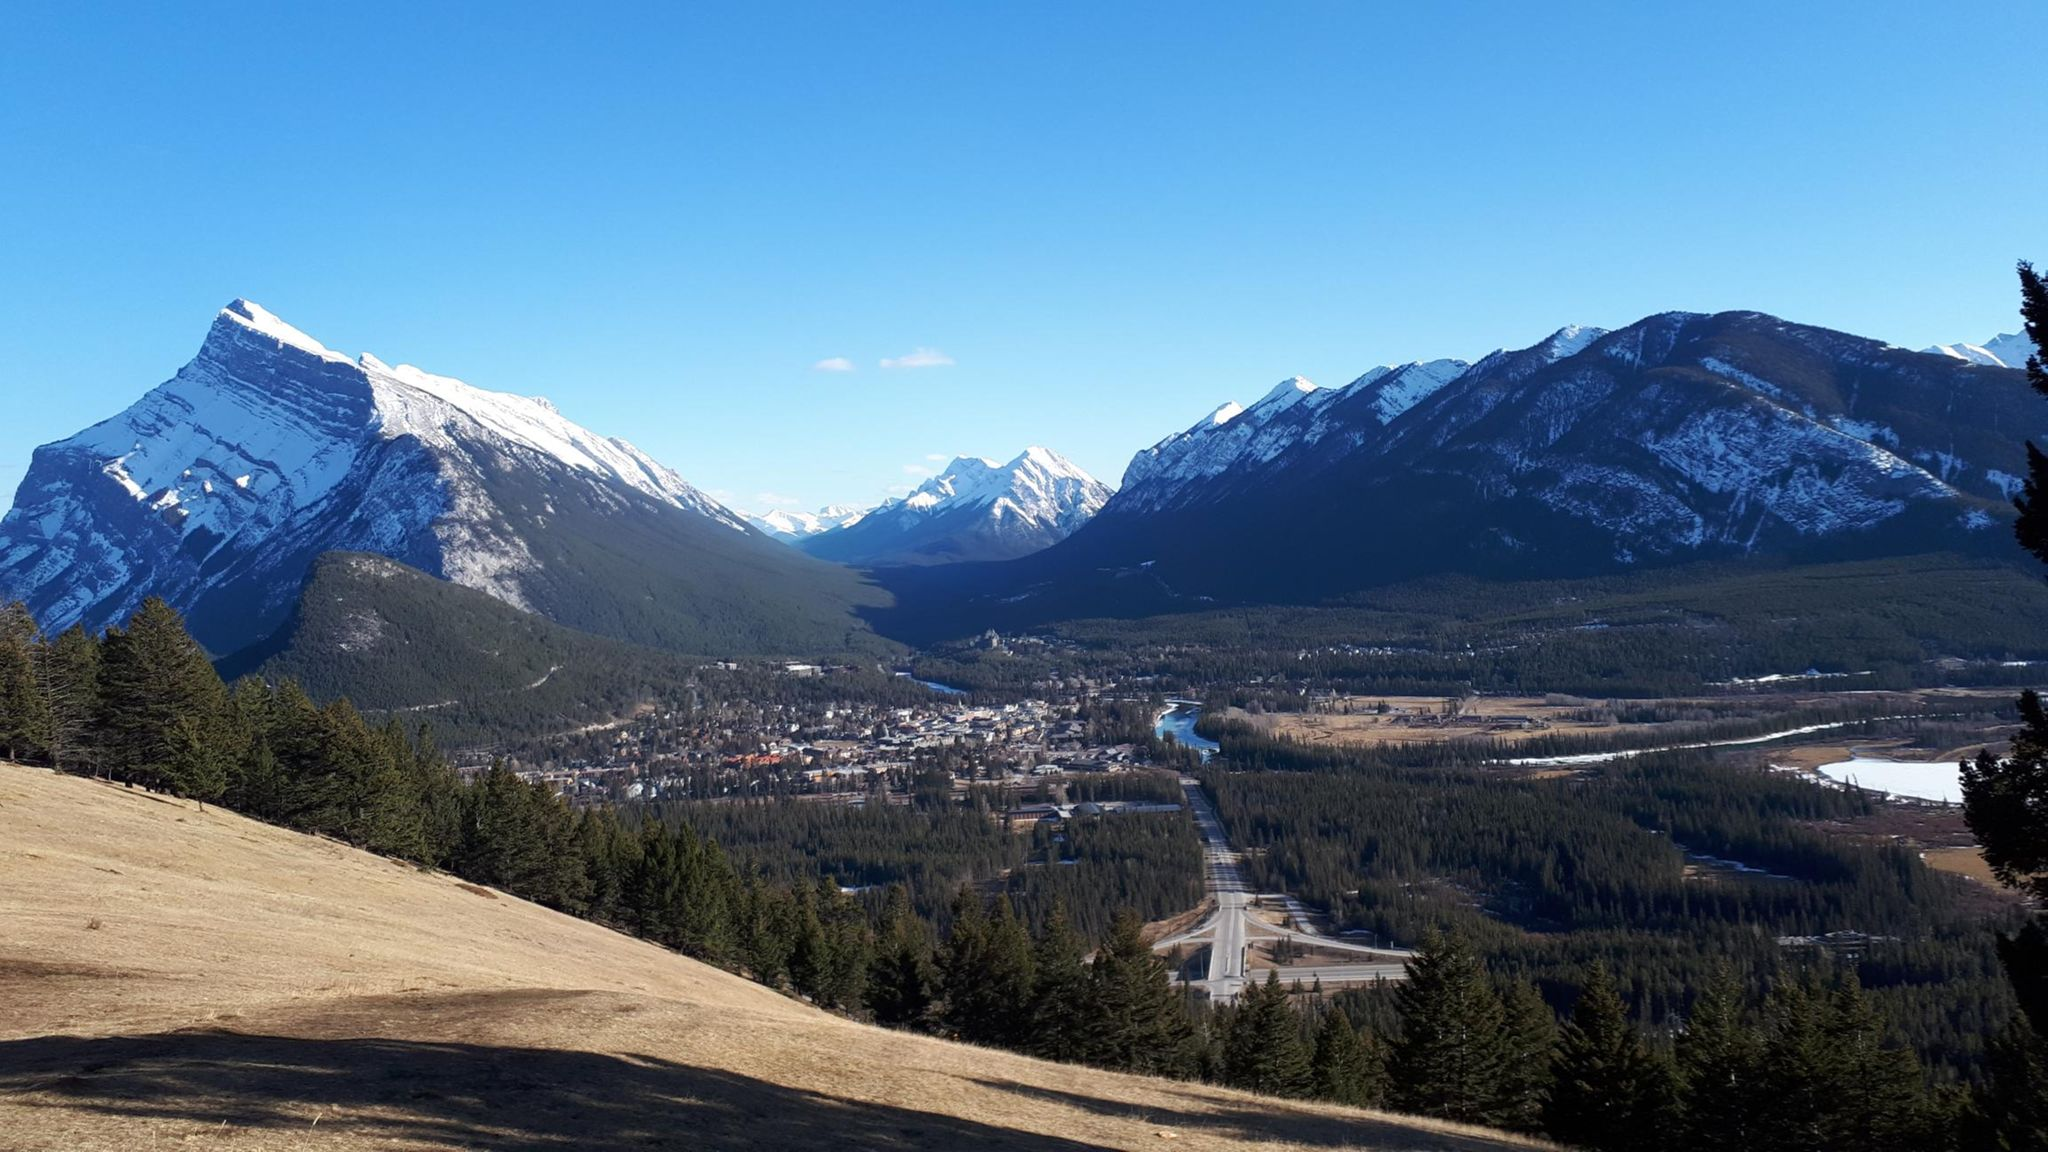 View from the Mount Norquay road, April 2019.